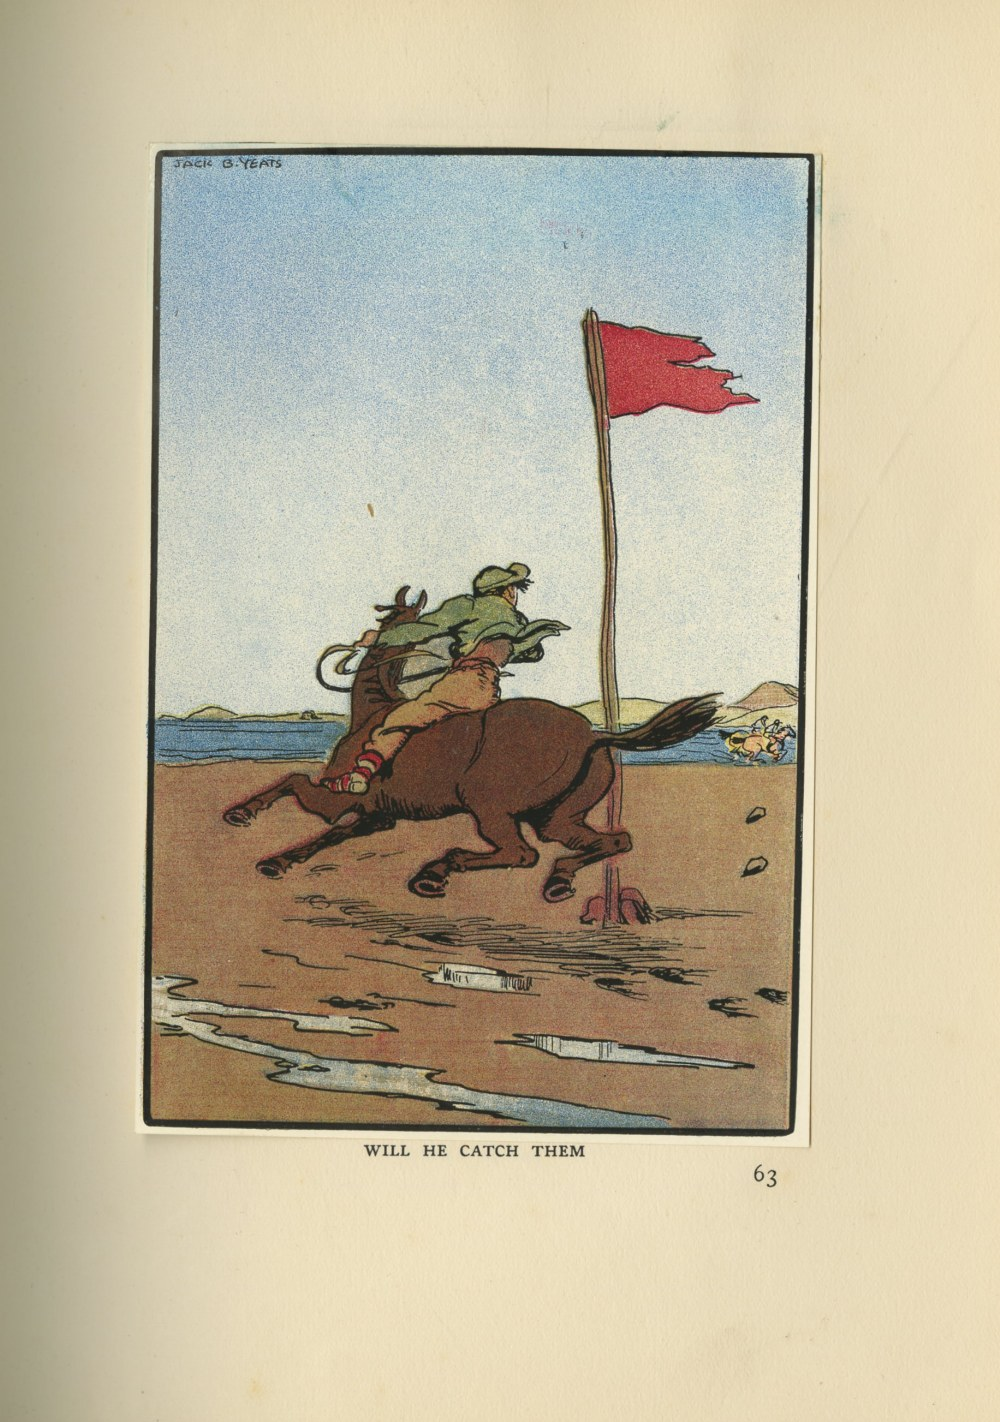 Yeats (J.B.) Life in the West of Ireland, 4to D. (Maunsel & Co.) 1912, First Edn., cold.